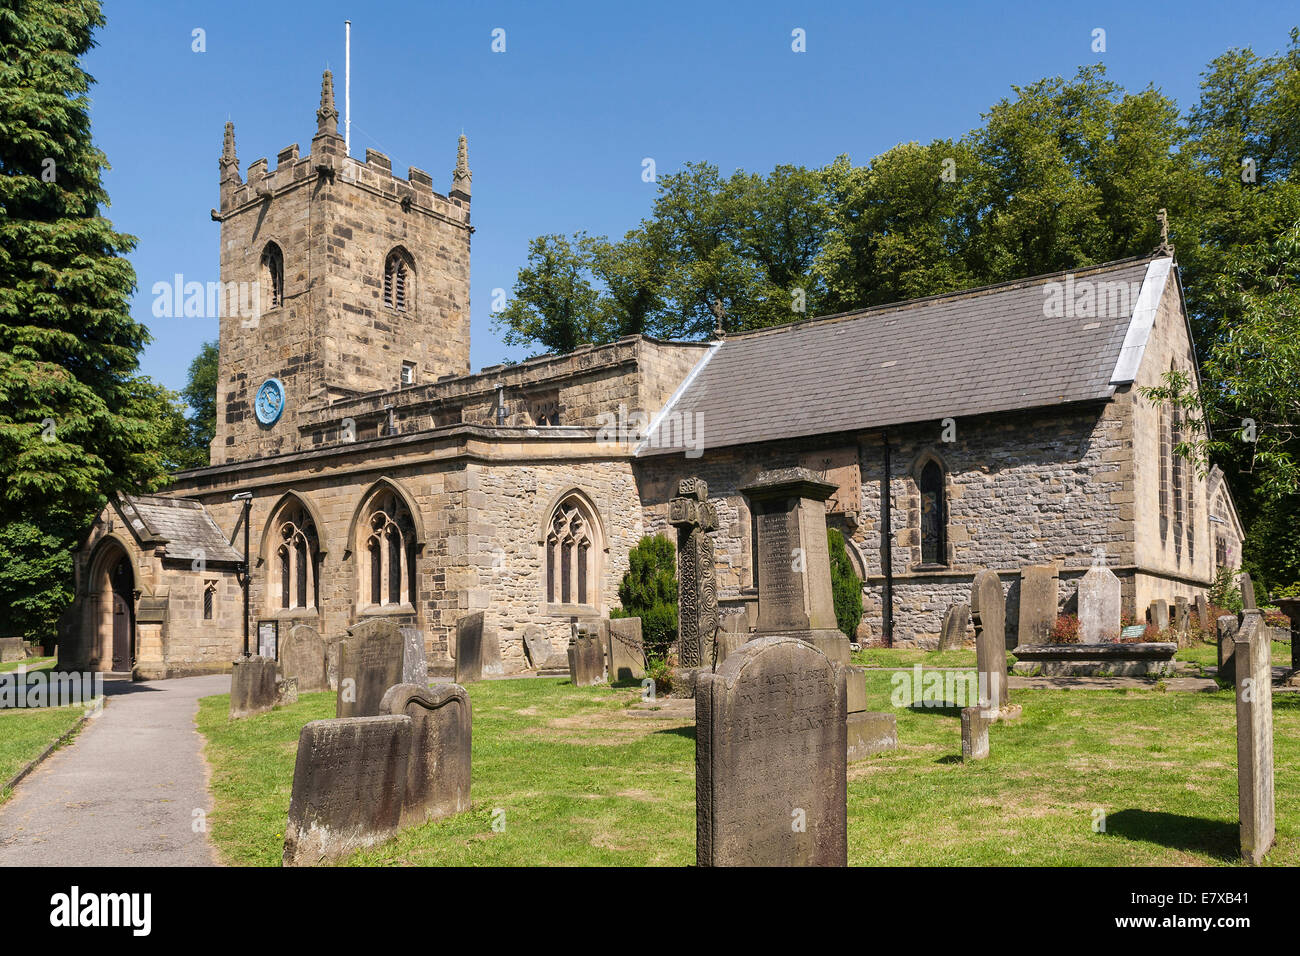 England Derbyshire, Eyam church - Stock Image